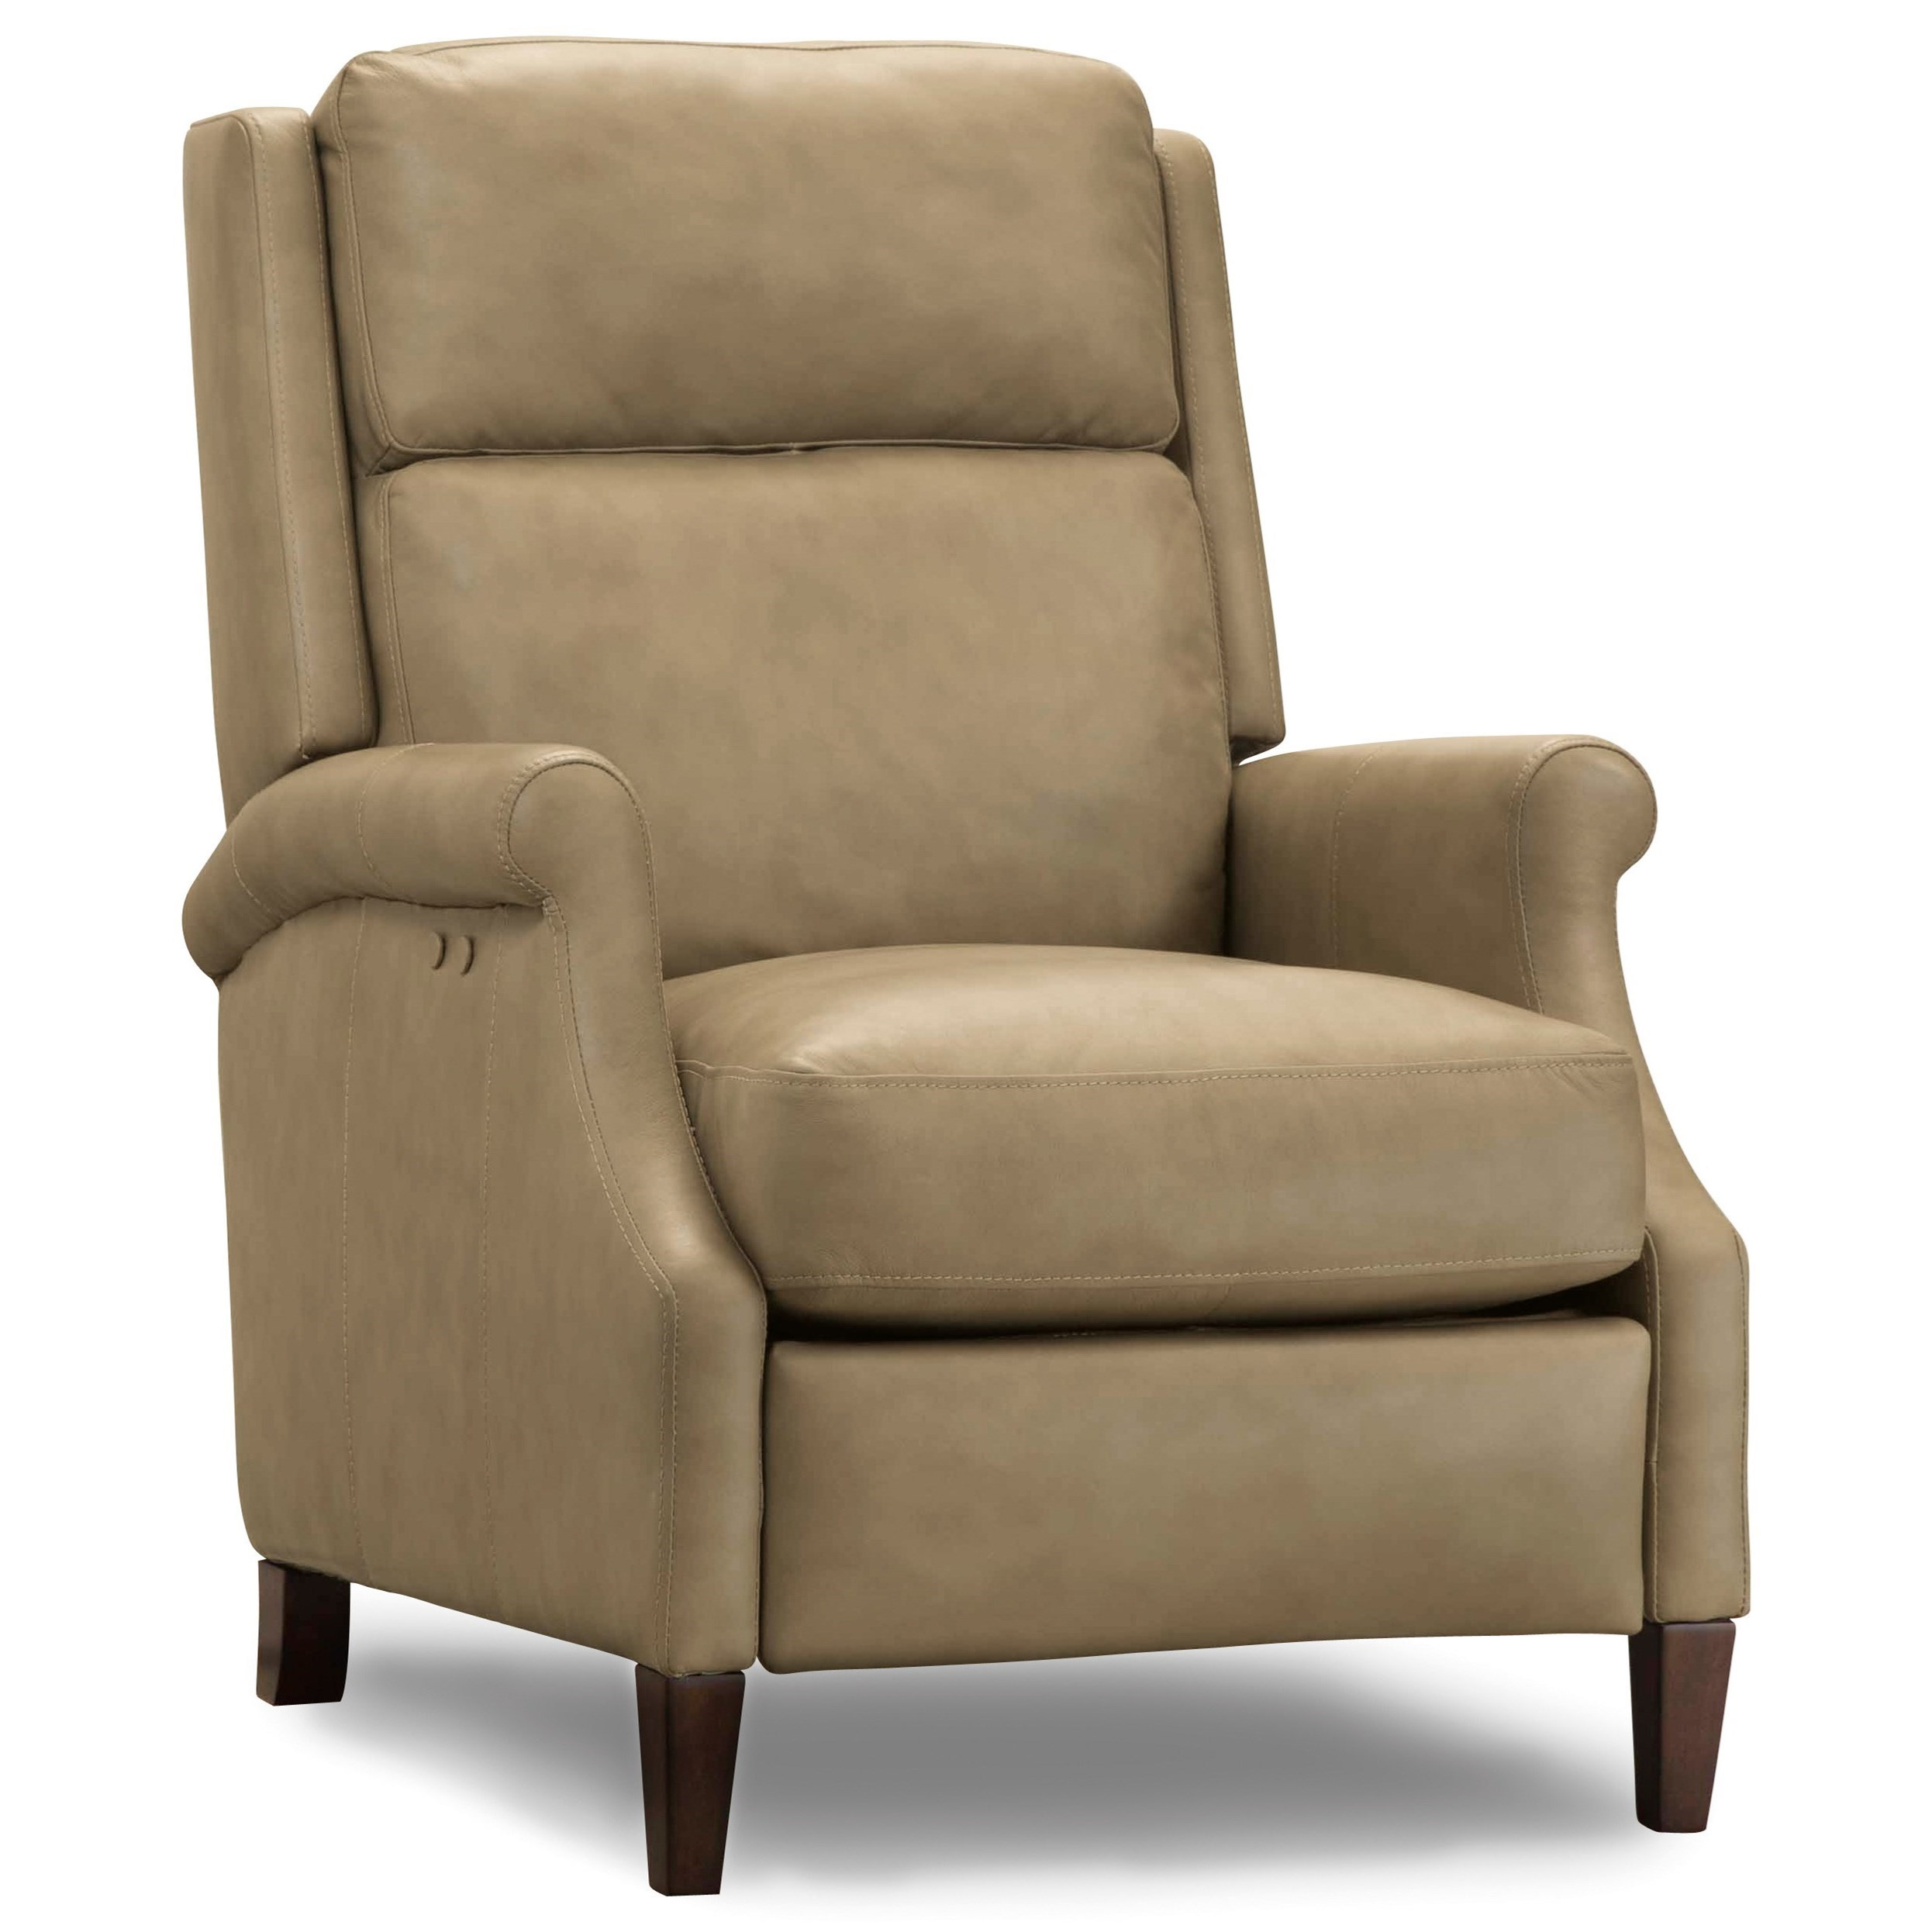 Leather Reclining Chairs Reclining Chairs Allie Transitional Power Recliner By Hooker Furniture At Belfort Furniture